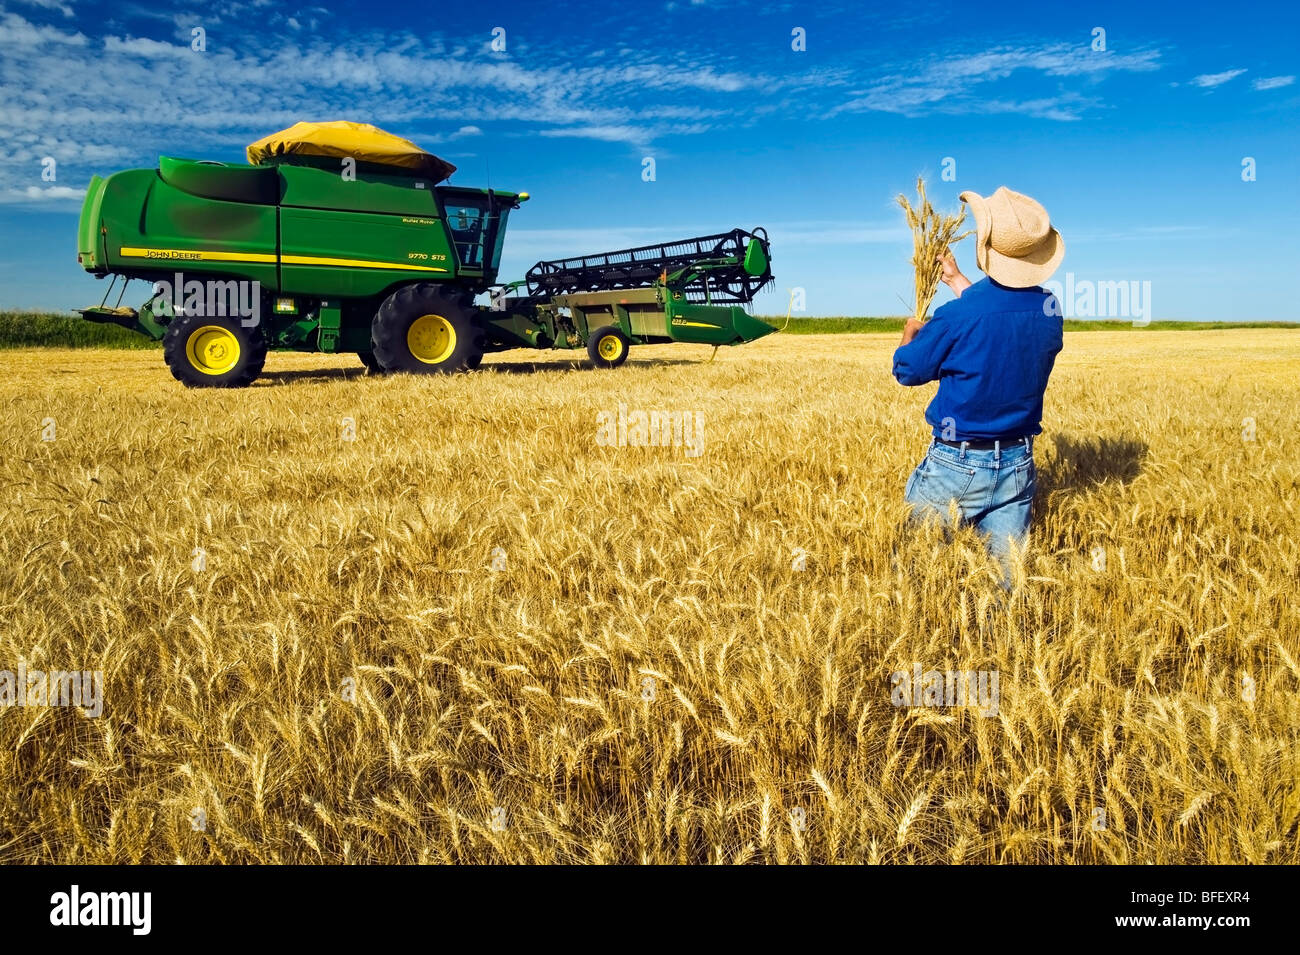 a man checks a harvest ready winter wheat crop with a combine harvester in the background, near Kane, Manitoba, - Stock Image